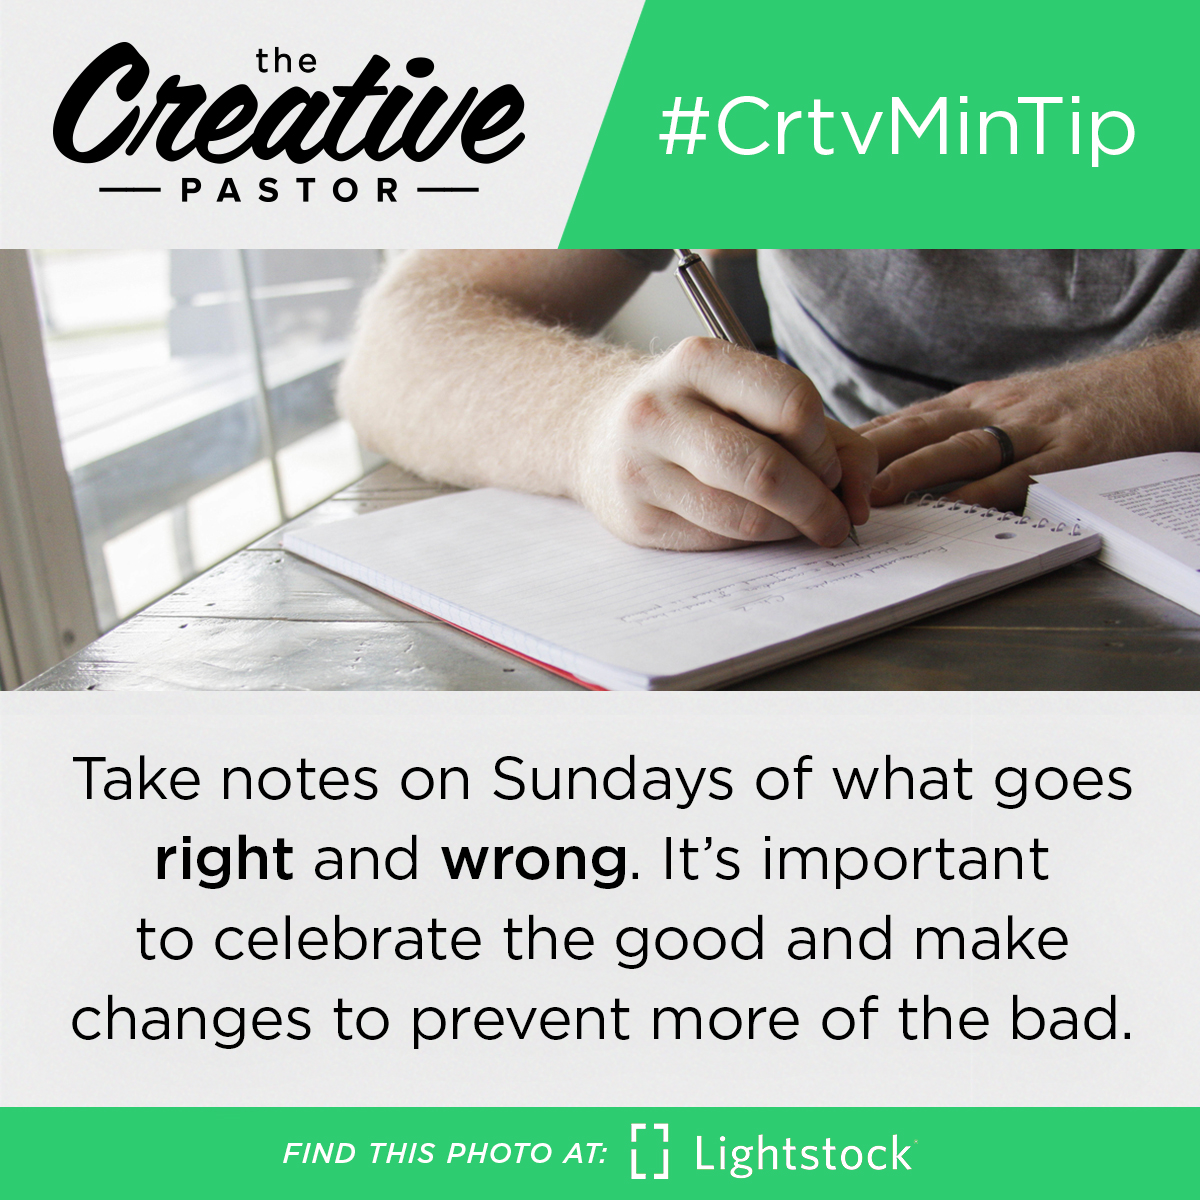 #CrtvMinTip: Take notes on Sundays of what goes right and wrong. It's important to celebrate the good and make changes to prevent more of the bad.